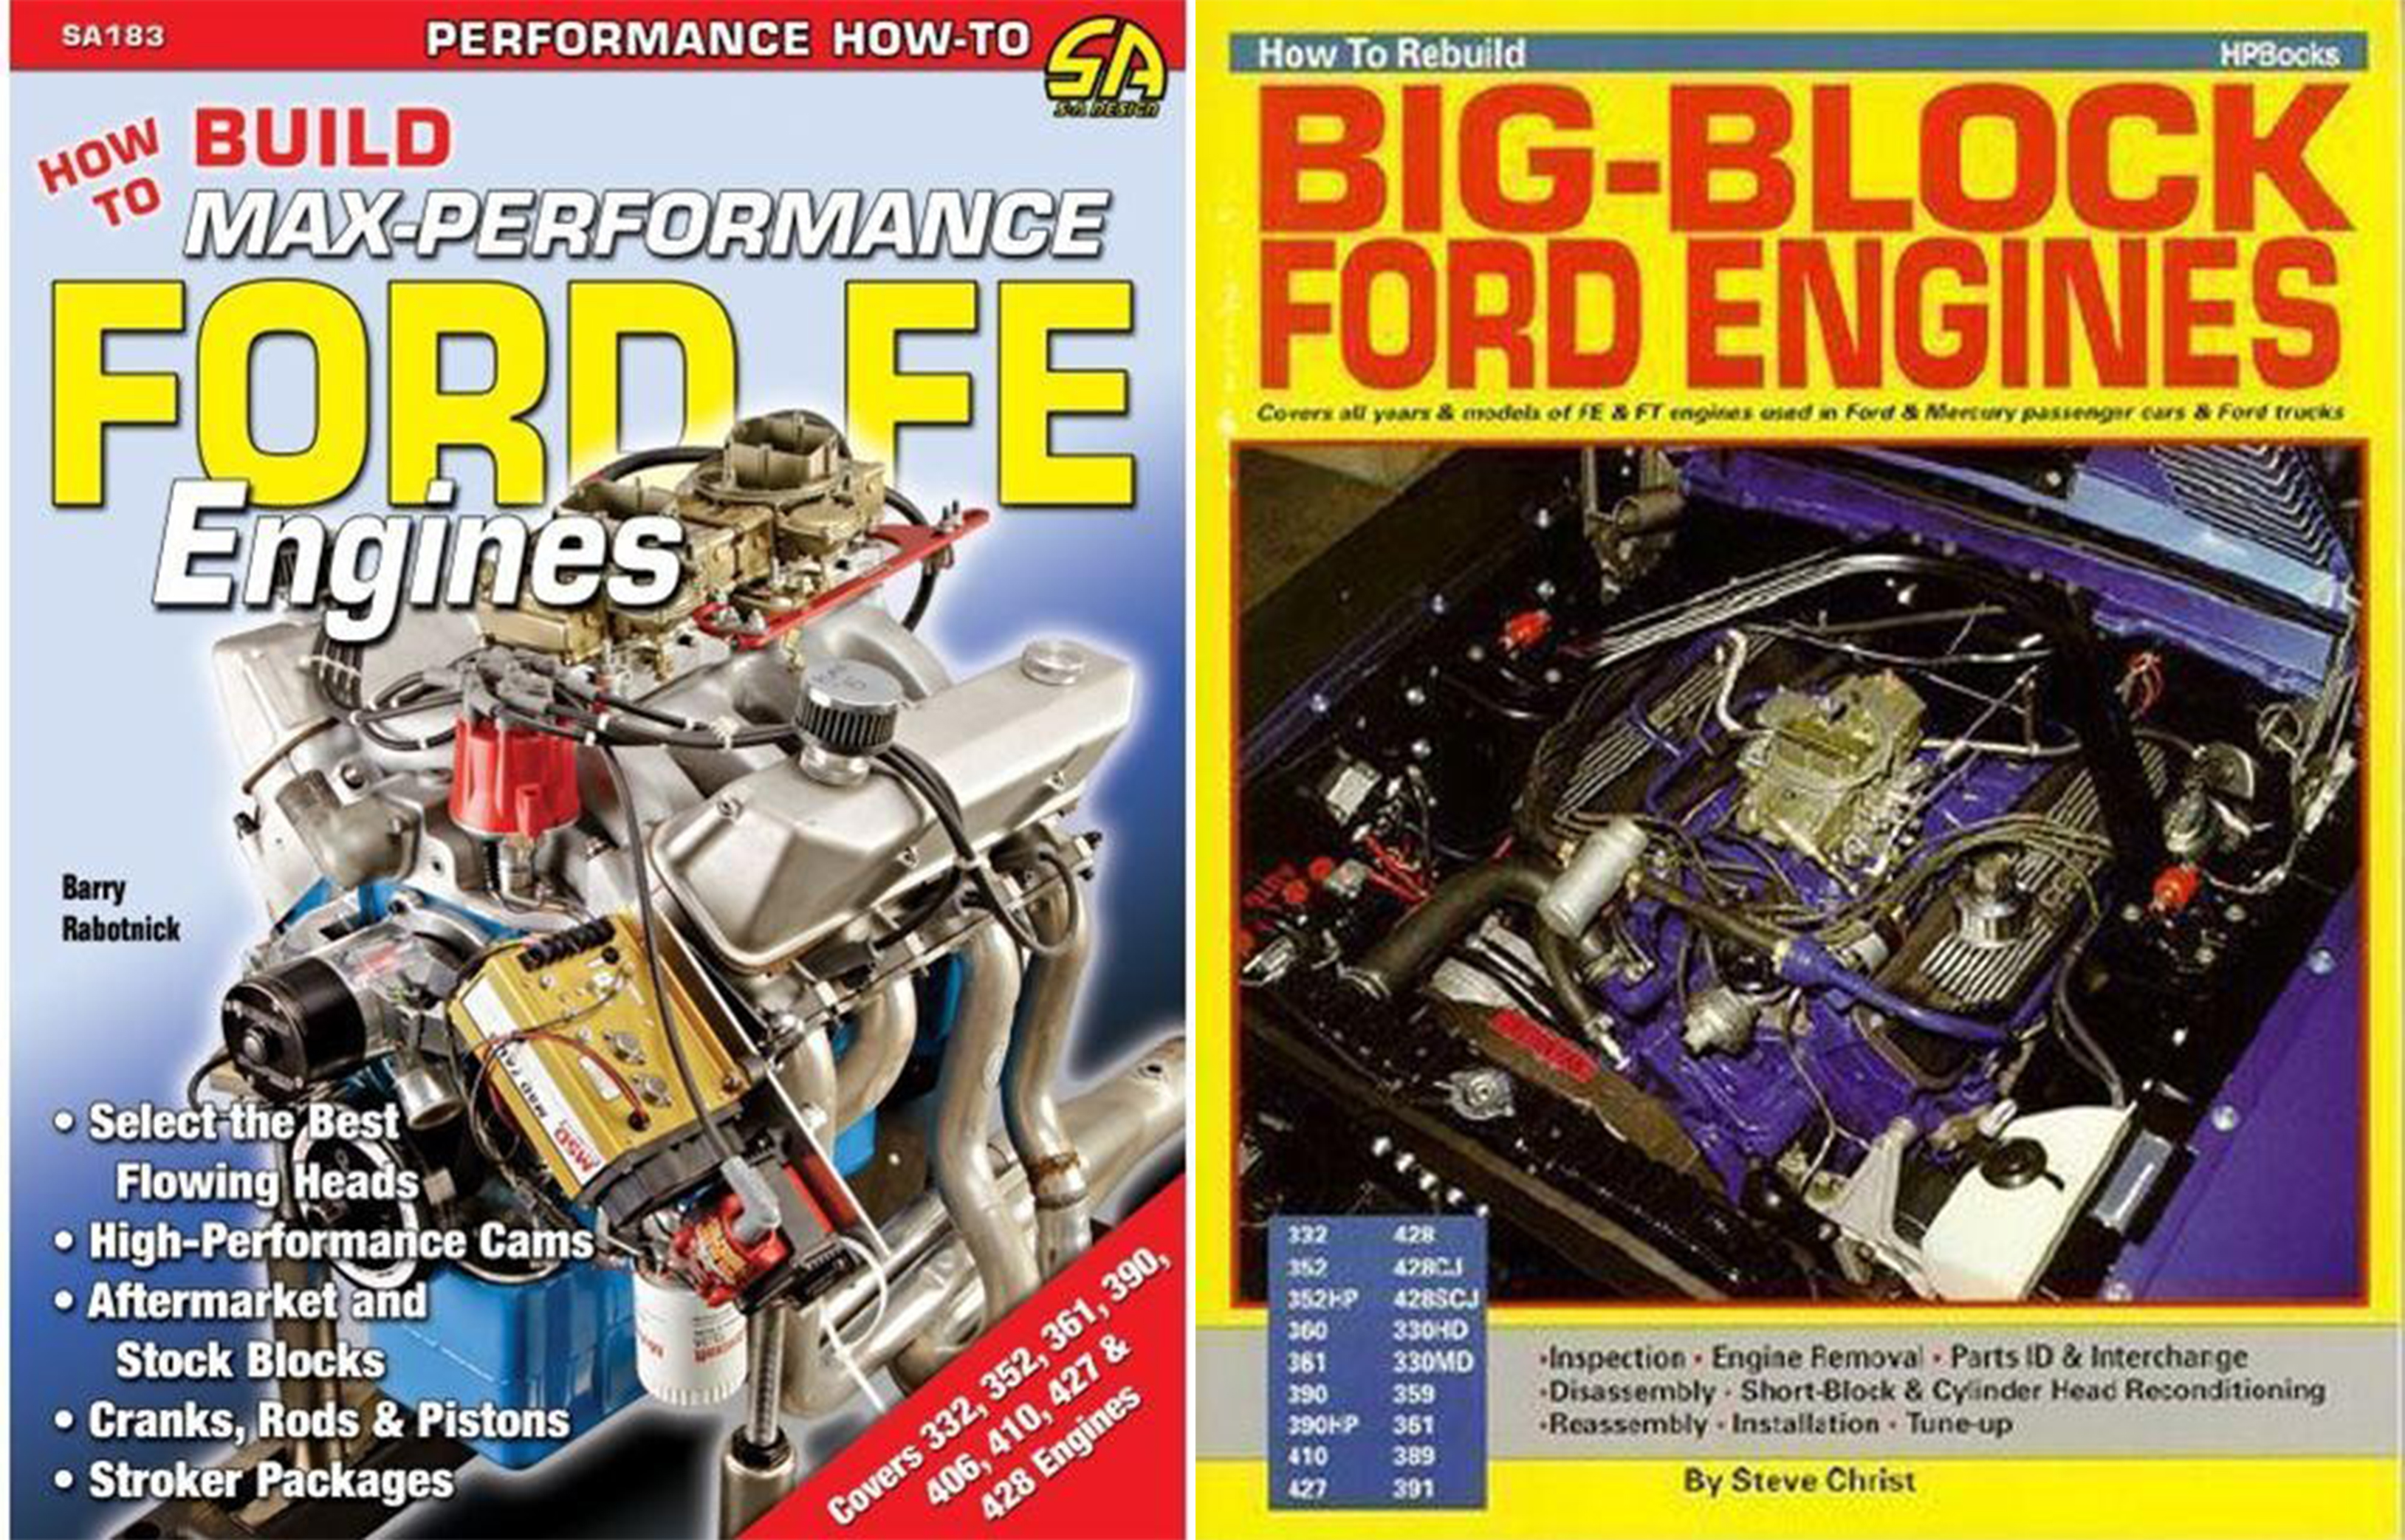 Sentinel FORD FE ENGINE REBUILD PERFORMANCE MANUALS 332 359 360 361 389 390  391 427 428